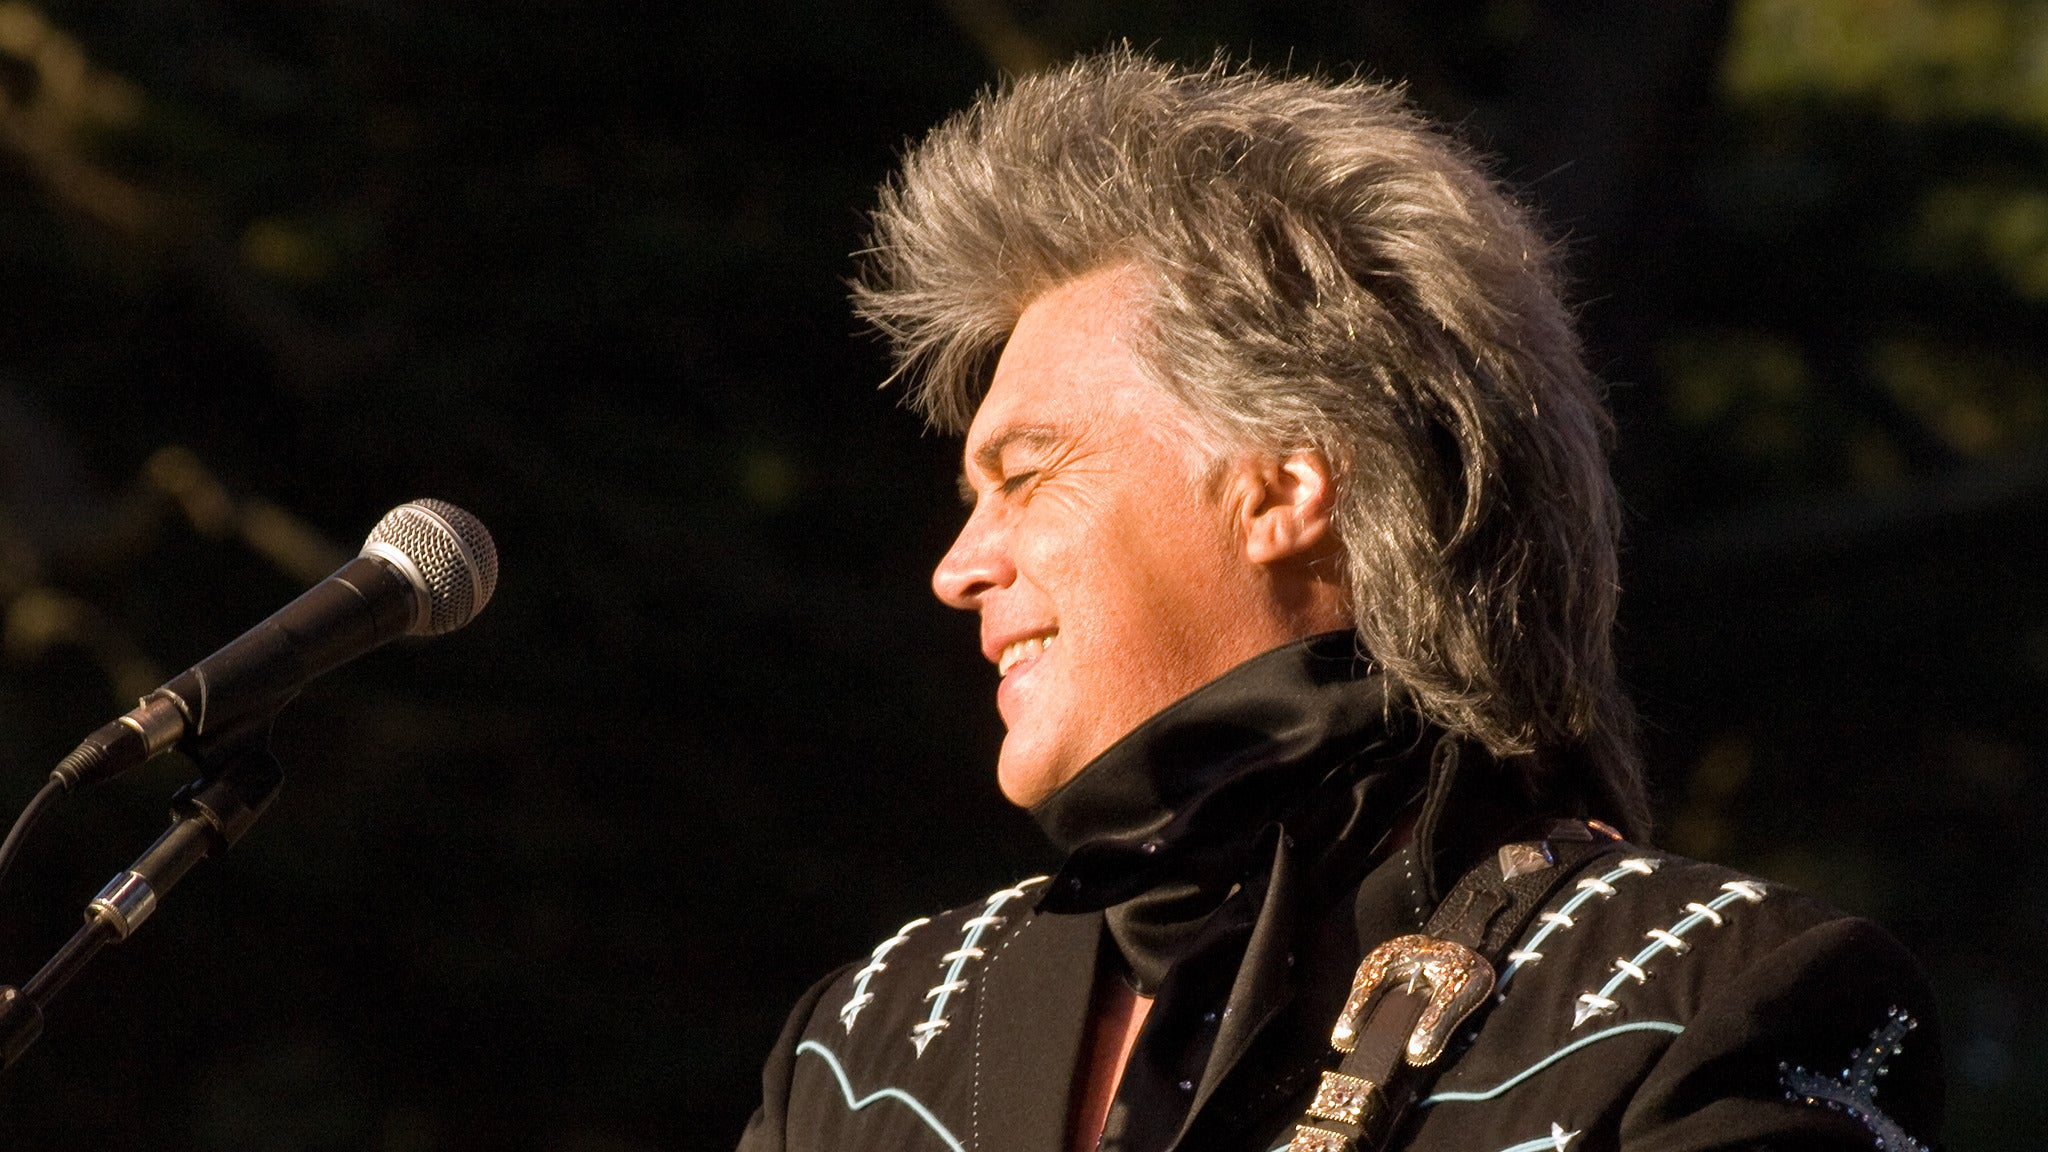 Marty Stuart at Cain's Ballroom